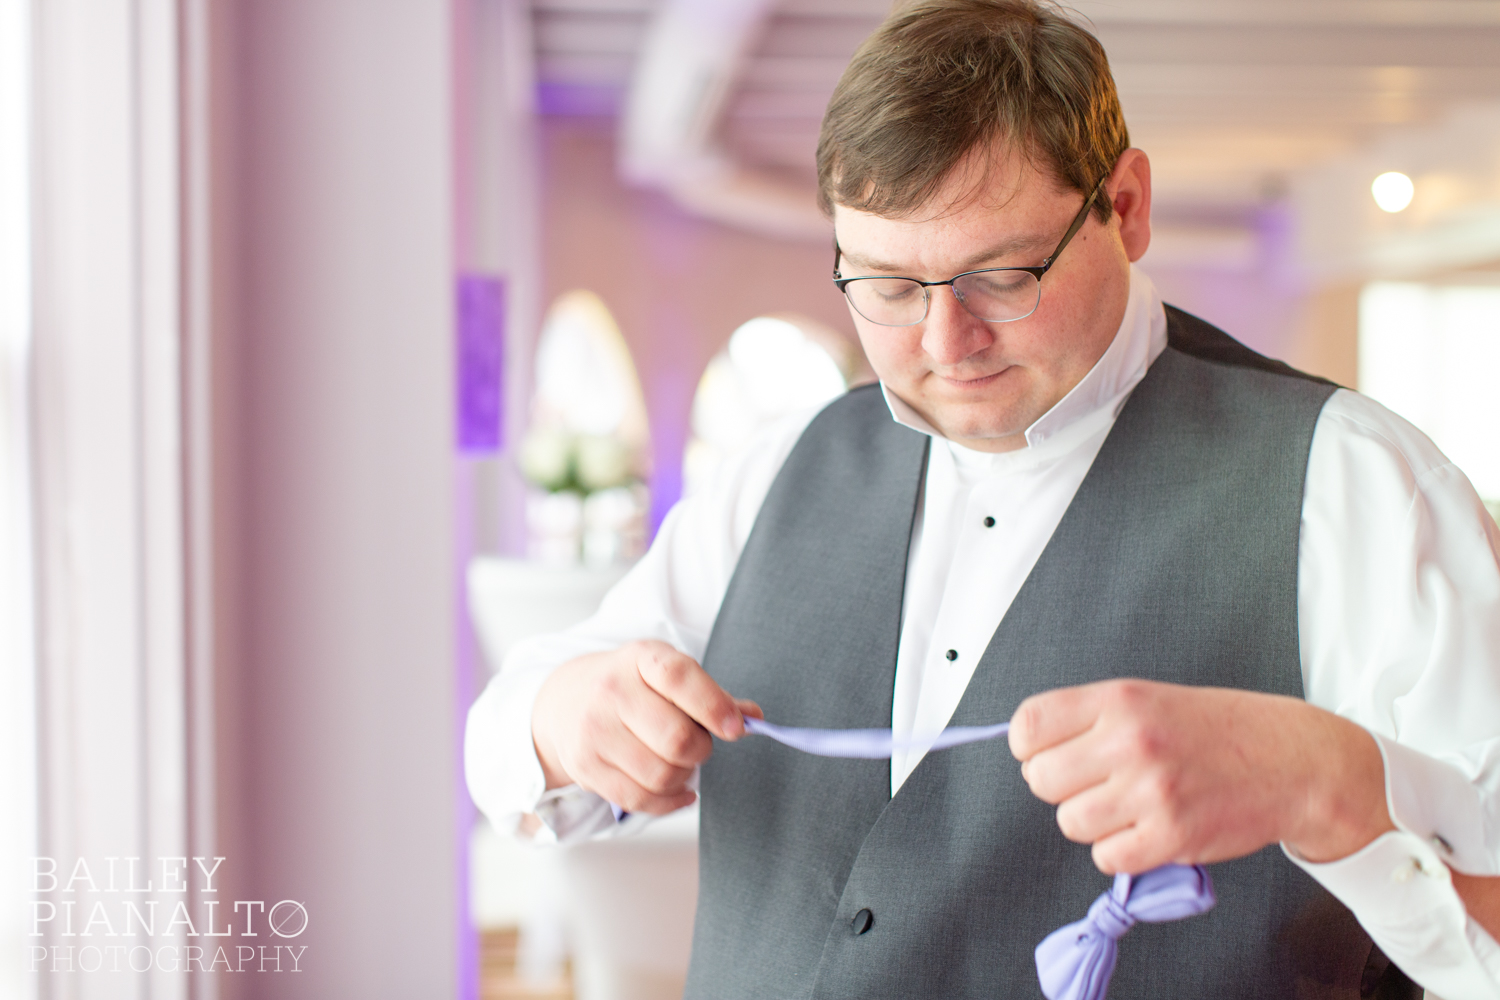 Groom Getting Ready at Purple & Gray Down-to-Earth Spring Wedding  | Uptown Theater | Kansas City, MO